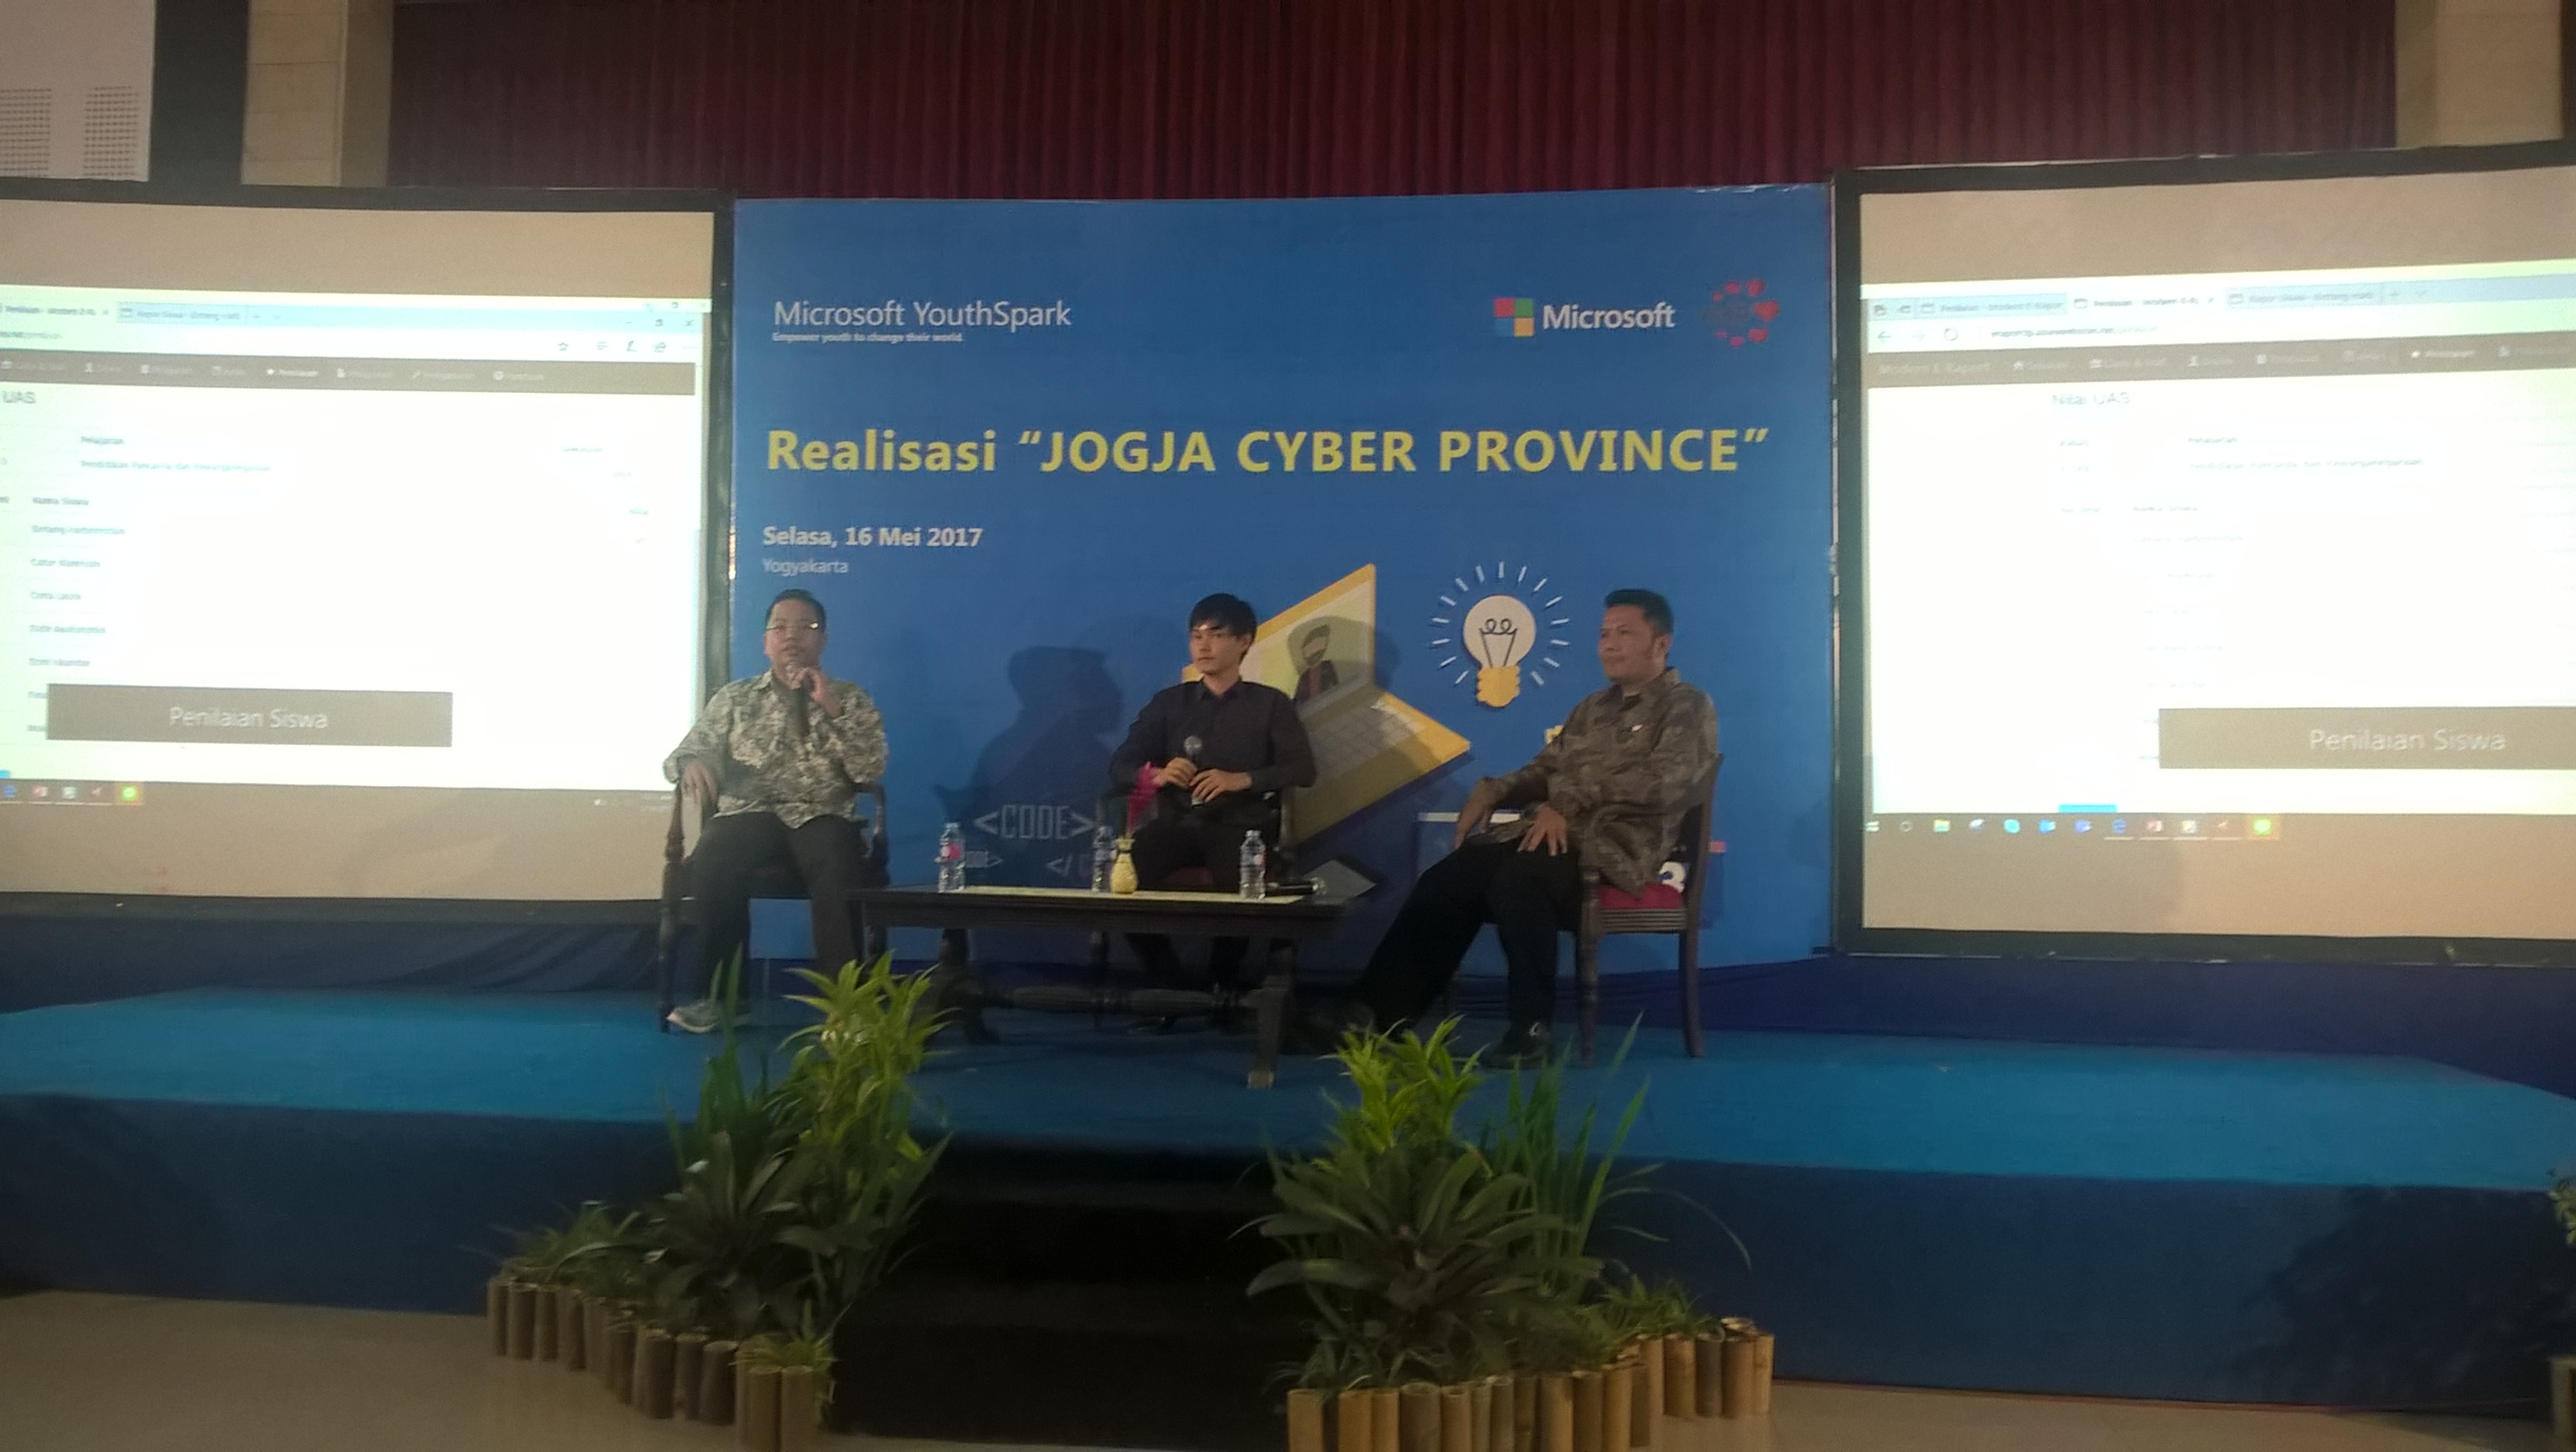 Focus Group Discussion - Jogja Cyber Province 2017